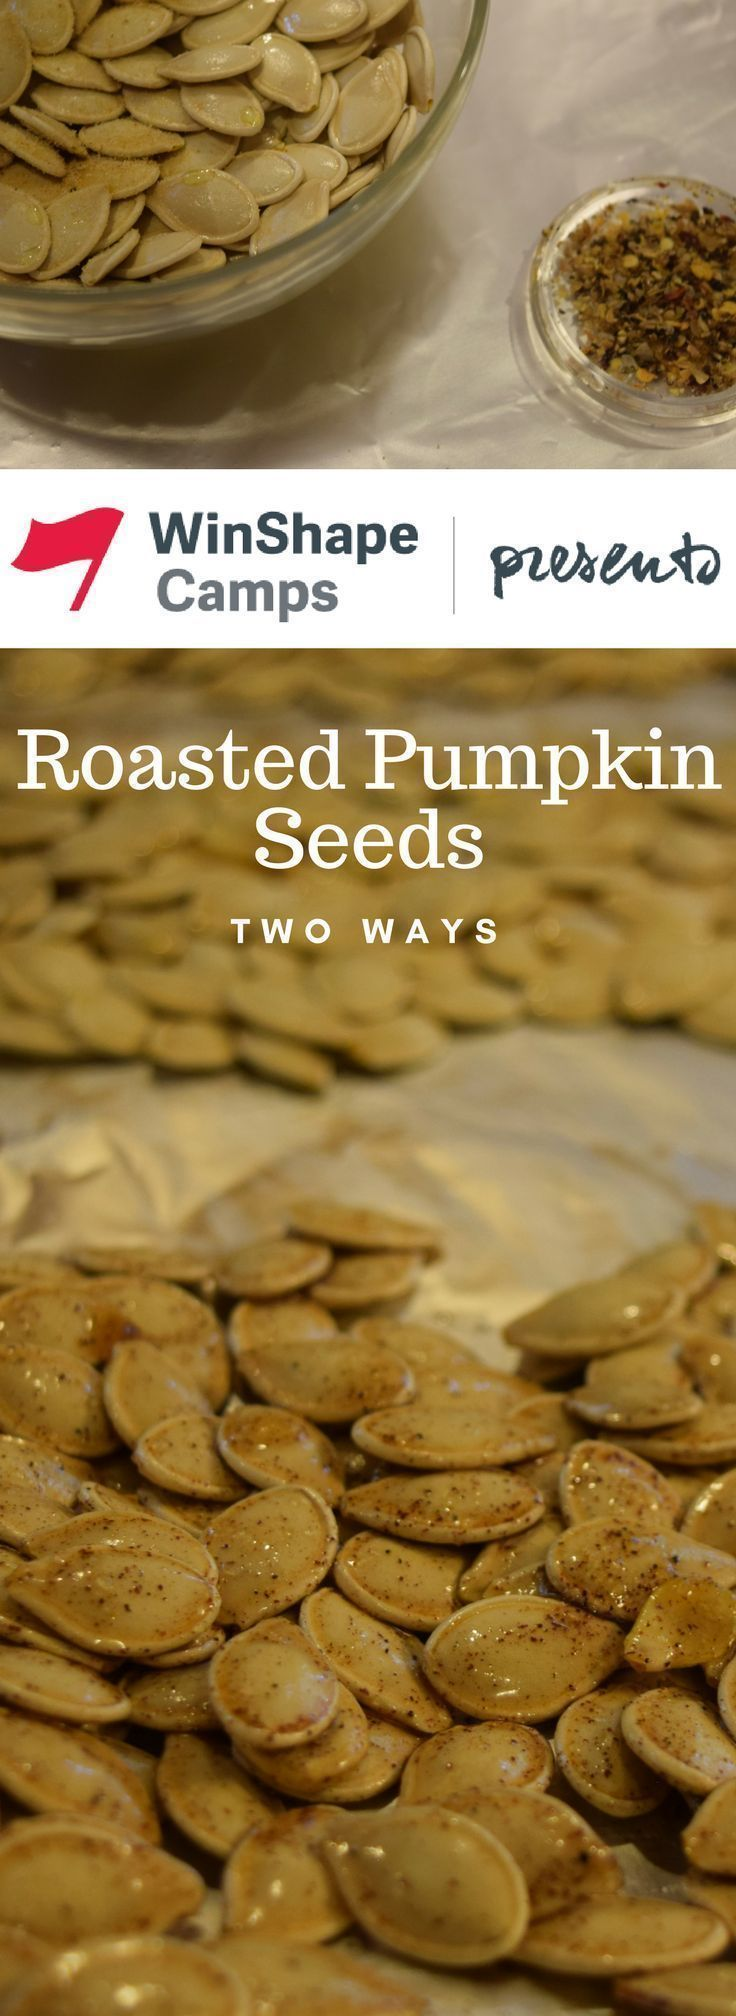 Super yummy and easy roasted pumpkin seed #recipes for the entire #family #fall #roastedpumpkinseeds Super yummy and easy roasted pumpkin seed #recipes for the entire #family #fall #roastingpumpkinseeds Super yummy and easy roasted pumpkin seed #recipes for the entire #family #fall #roastedpumpkinseeds Super yummy and easy roasted pumpkin seed #recipes for the entire #family #fall #roastedpumpkinseedsrecipe Super yummy and easy roasted pumpkin seed #recipes for the entire #family #fall #roastedp #roastedpumpkinseeds